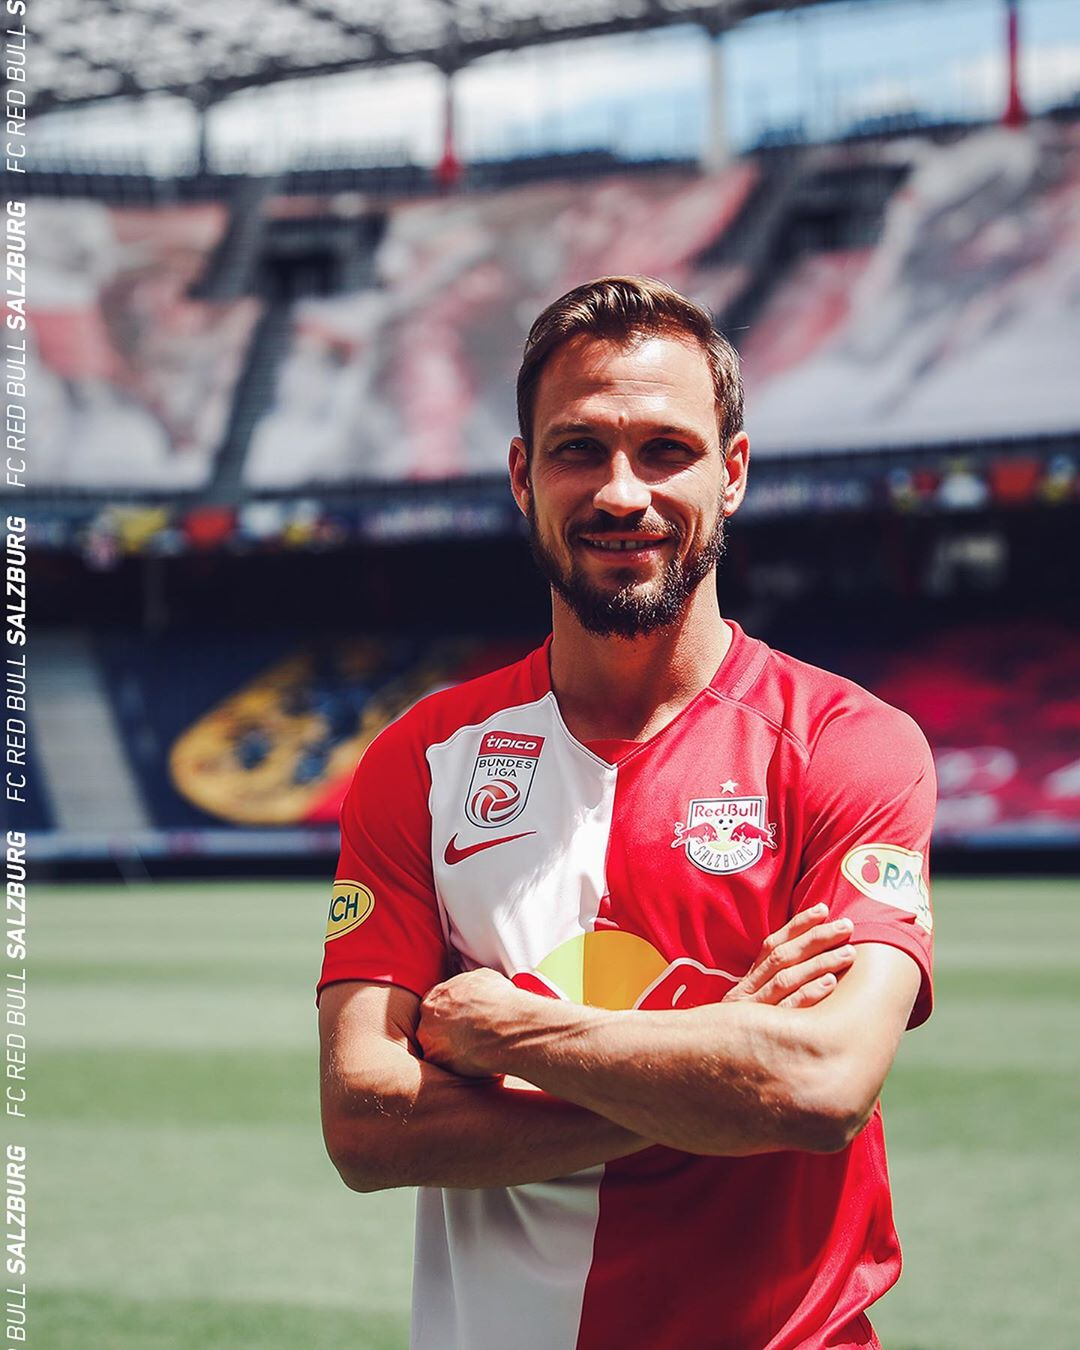 Red Bull Salzburg 2020 21 Nike Home Kit 20 21 Kits Football Shirt Blog